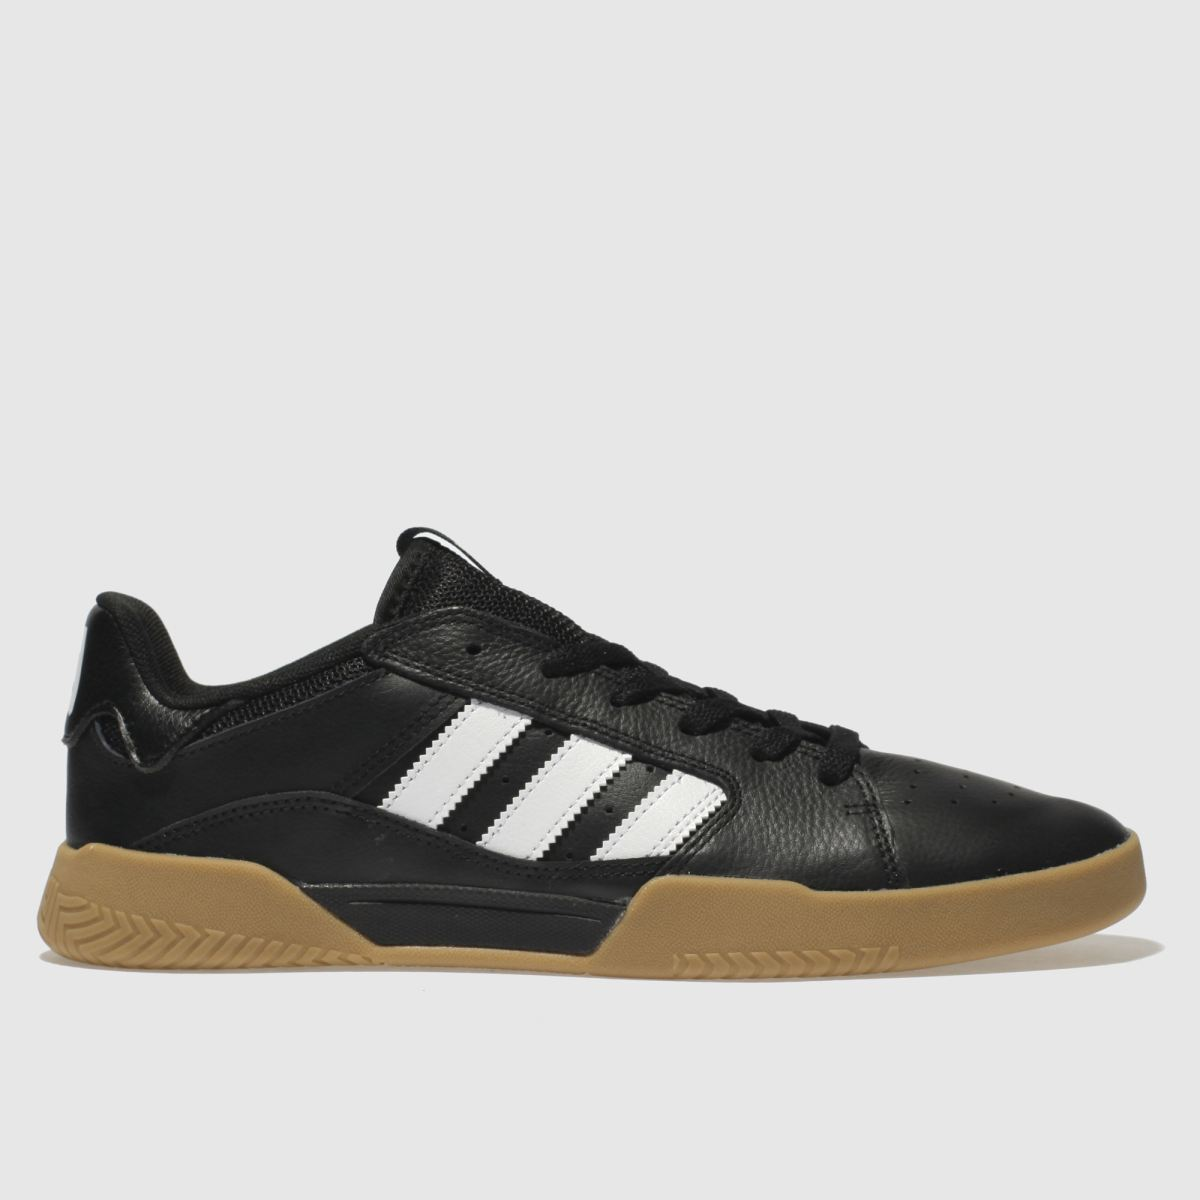 Adidas Skateboarding Black & White Vrx Low Trainers